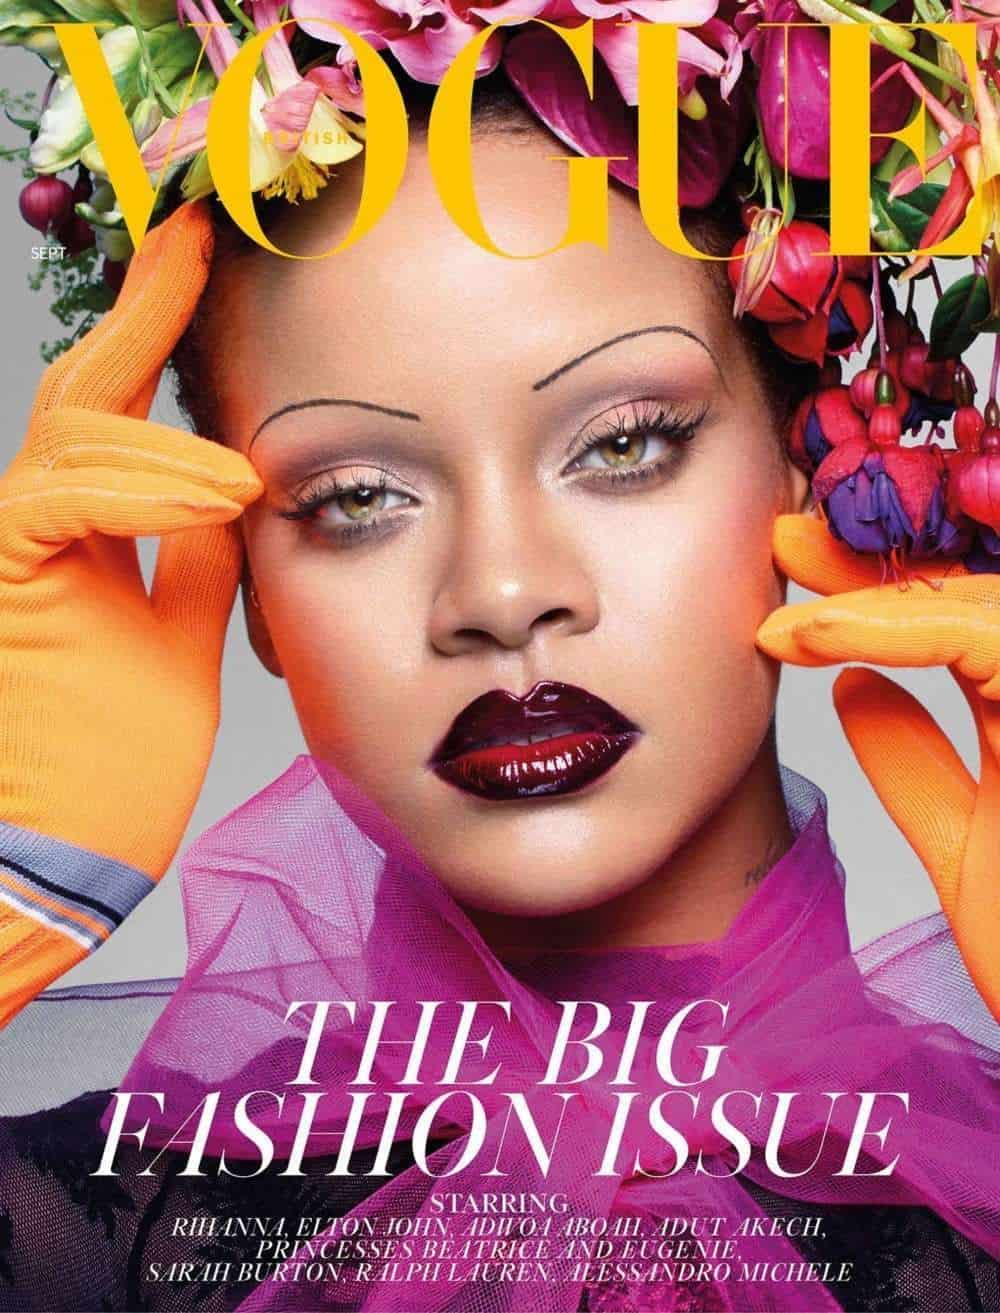 Photo of Rihanna makes history as she covers British Vogue magazine September edition